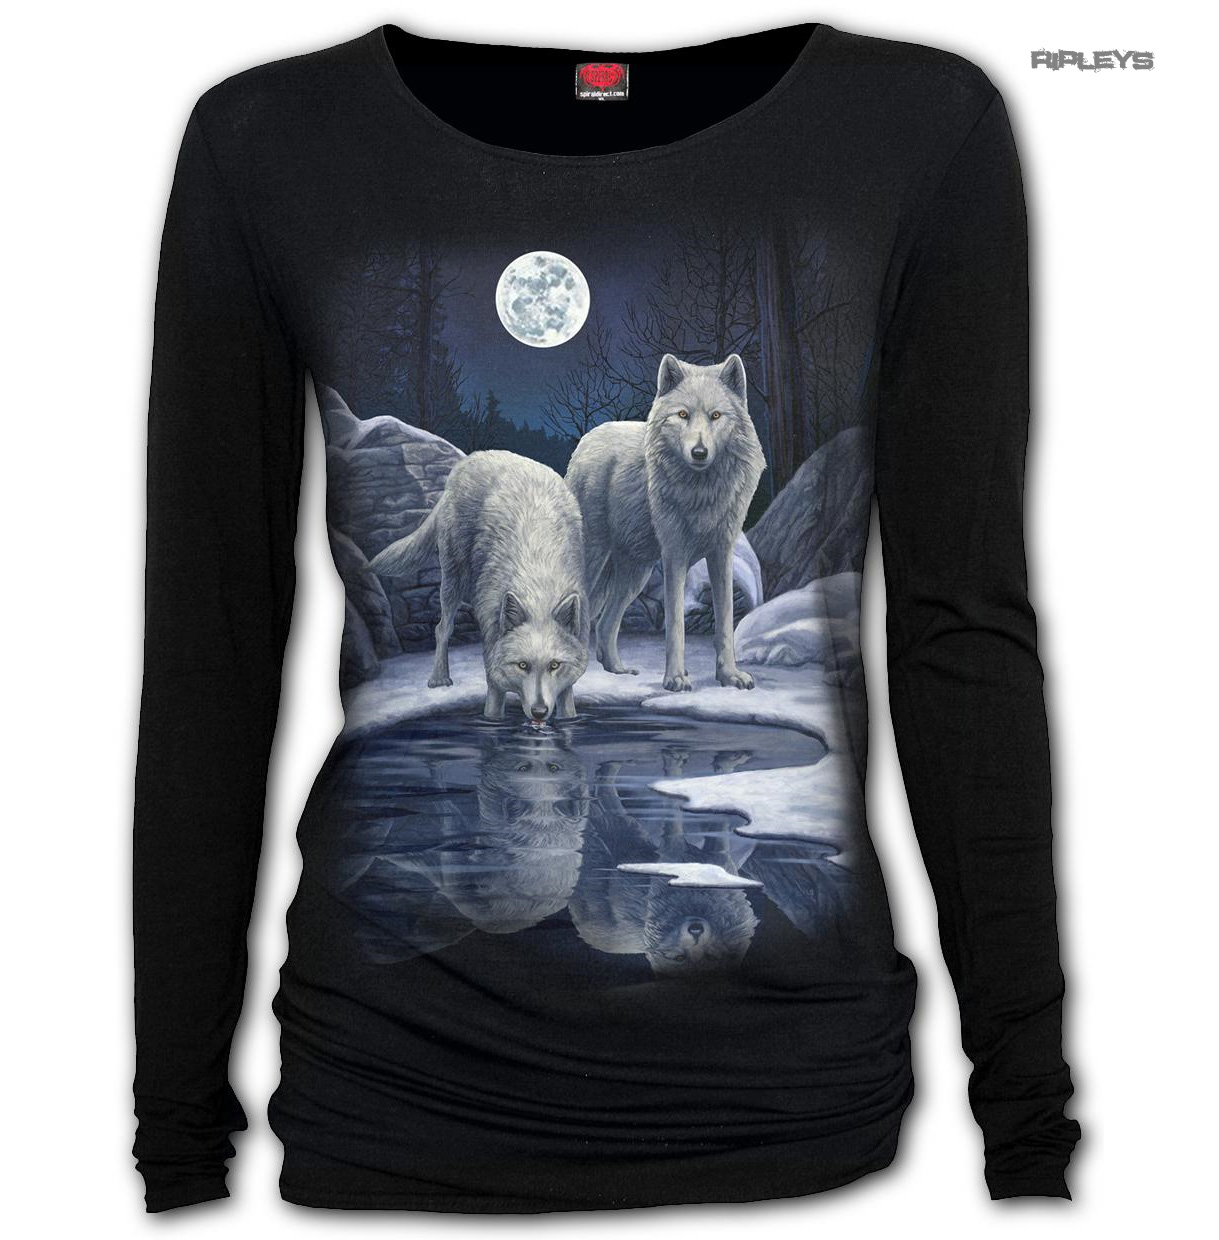 Spiral-Direct-Ladies-Black-Goth-WARRIORS-OF-WINTER-Wolf-L-Sleeve-Top-All-Sizes thumbnail 4